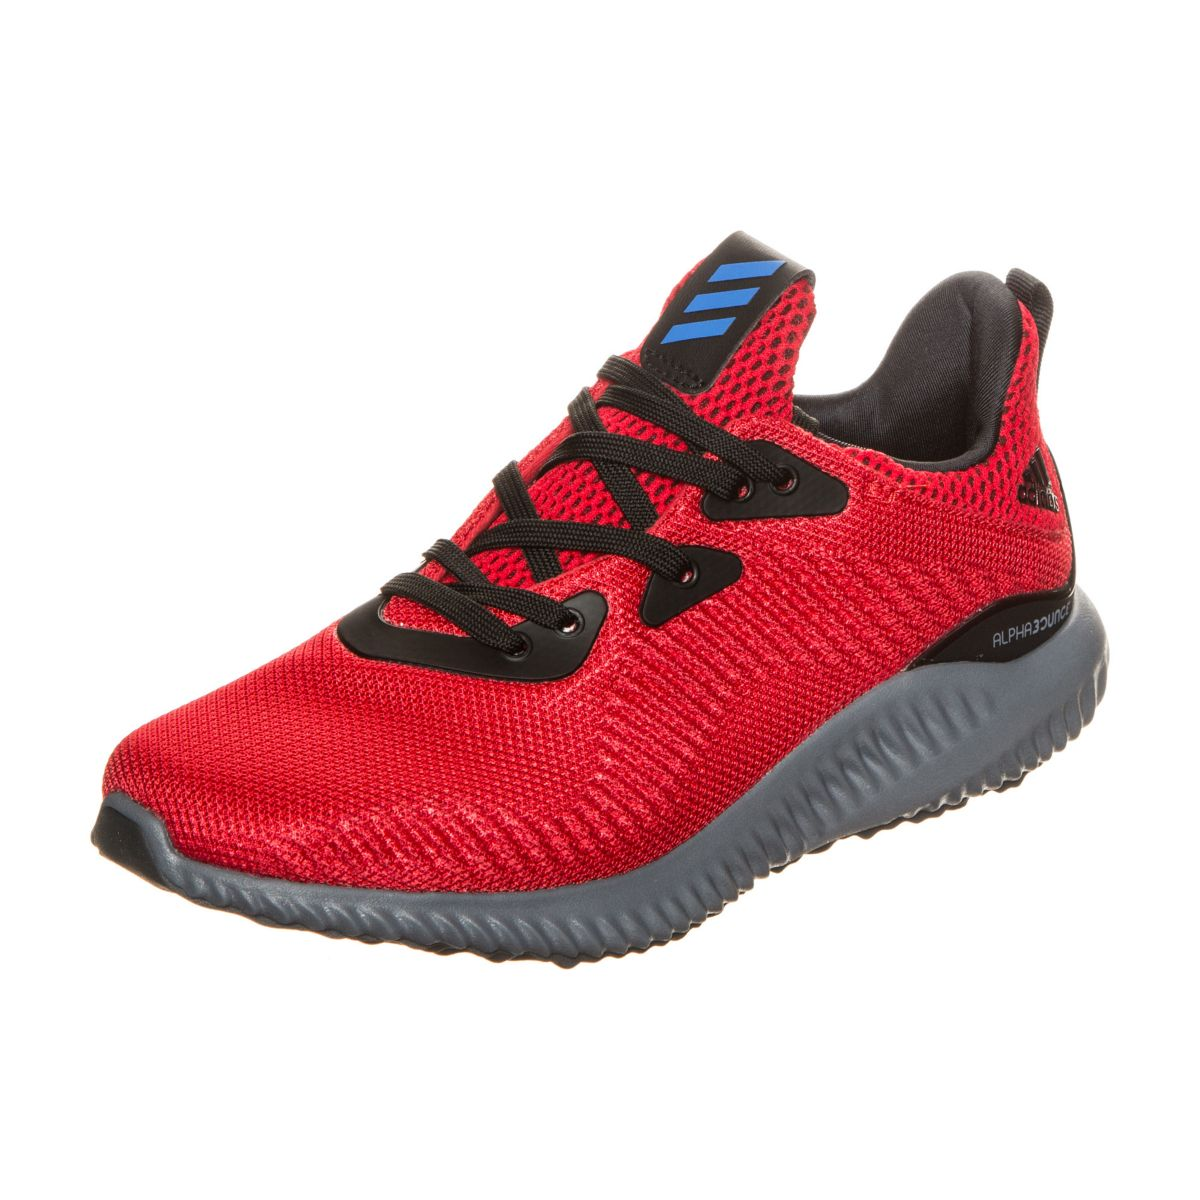 sports shoes 60f34 69664 Schuhe Herren Adidas Crazylight Boost Niedrig James Harden Triple Weiß  Einzigartig Designed - associate-degree.de